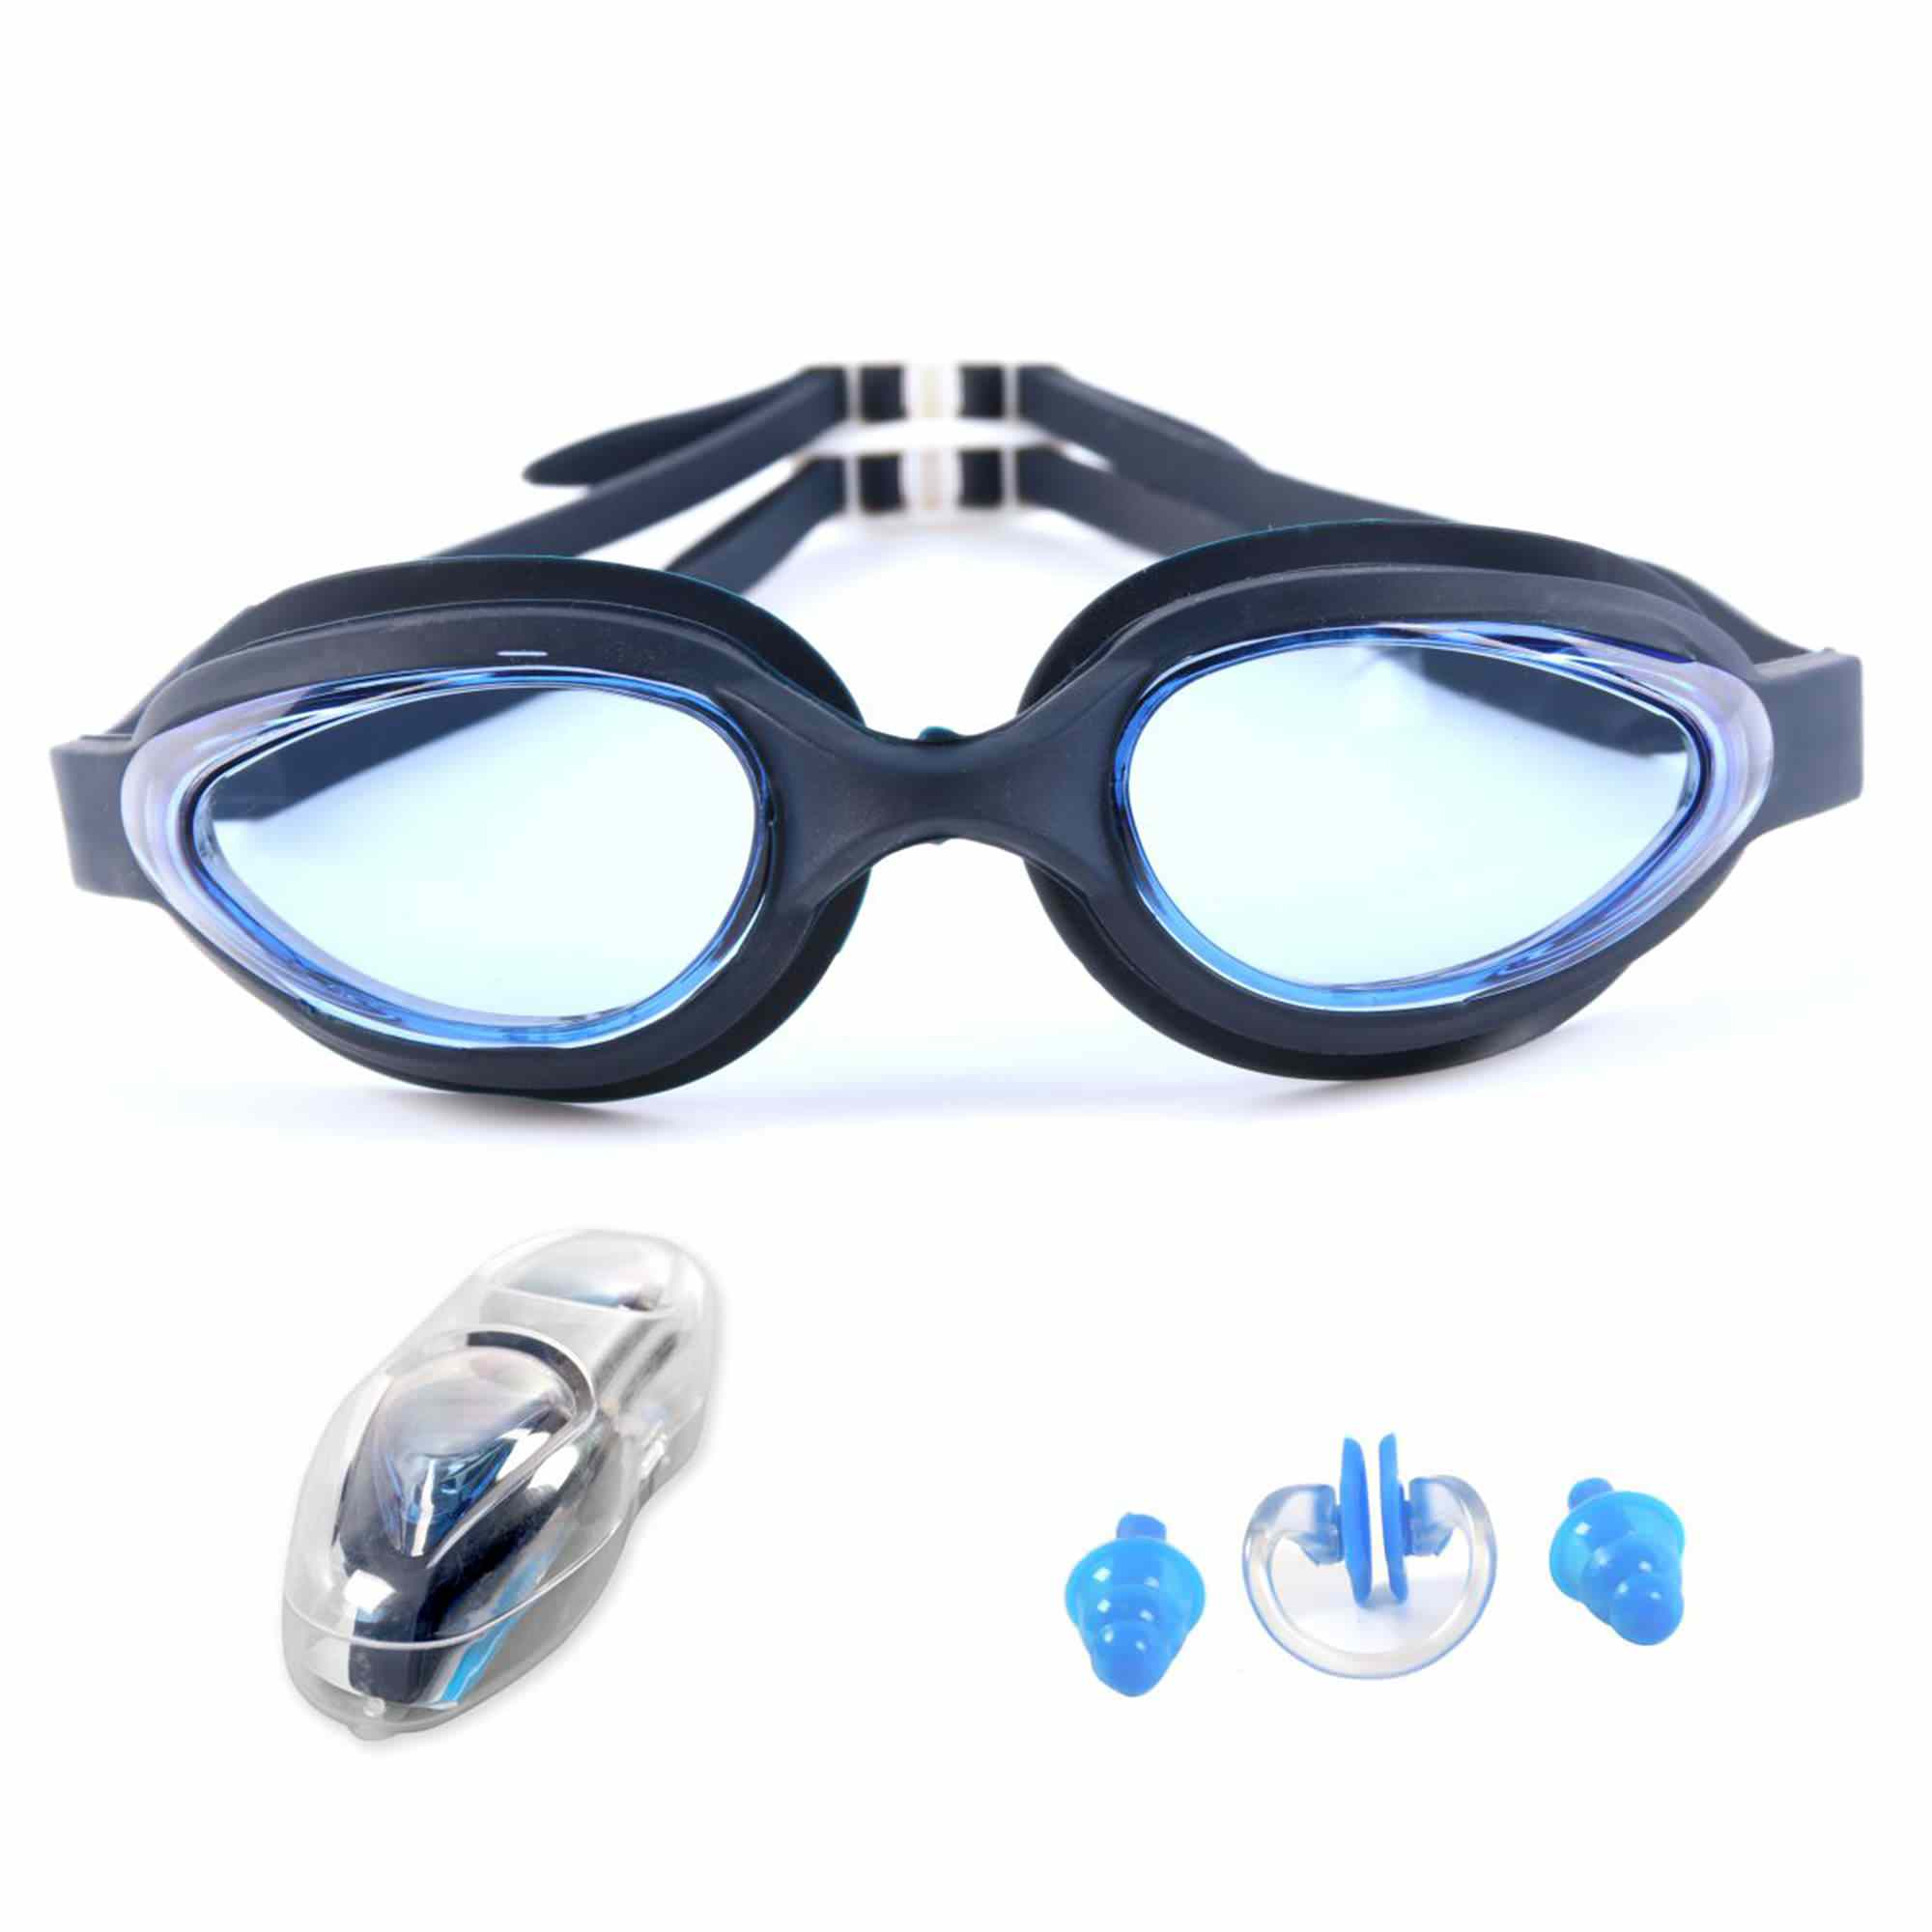 JML Swimming Goggles - No Leaking,Anti- Fog,UV Protection Swim Goggles With Free Protective Case + Nose Clip and Ear Plug - Comfortable Fit For Adult Men And Women